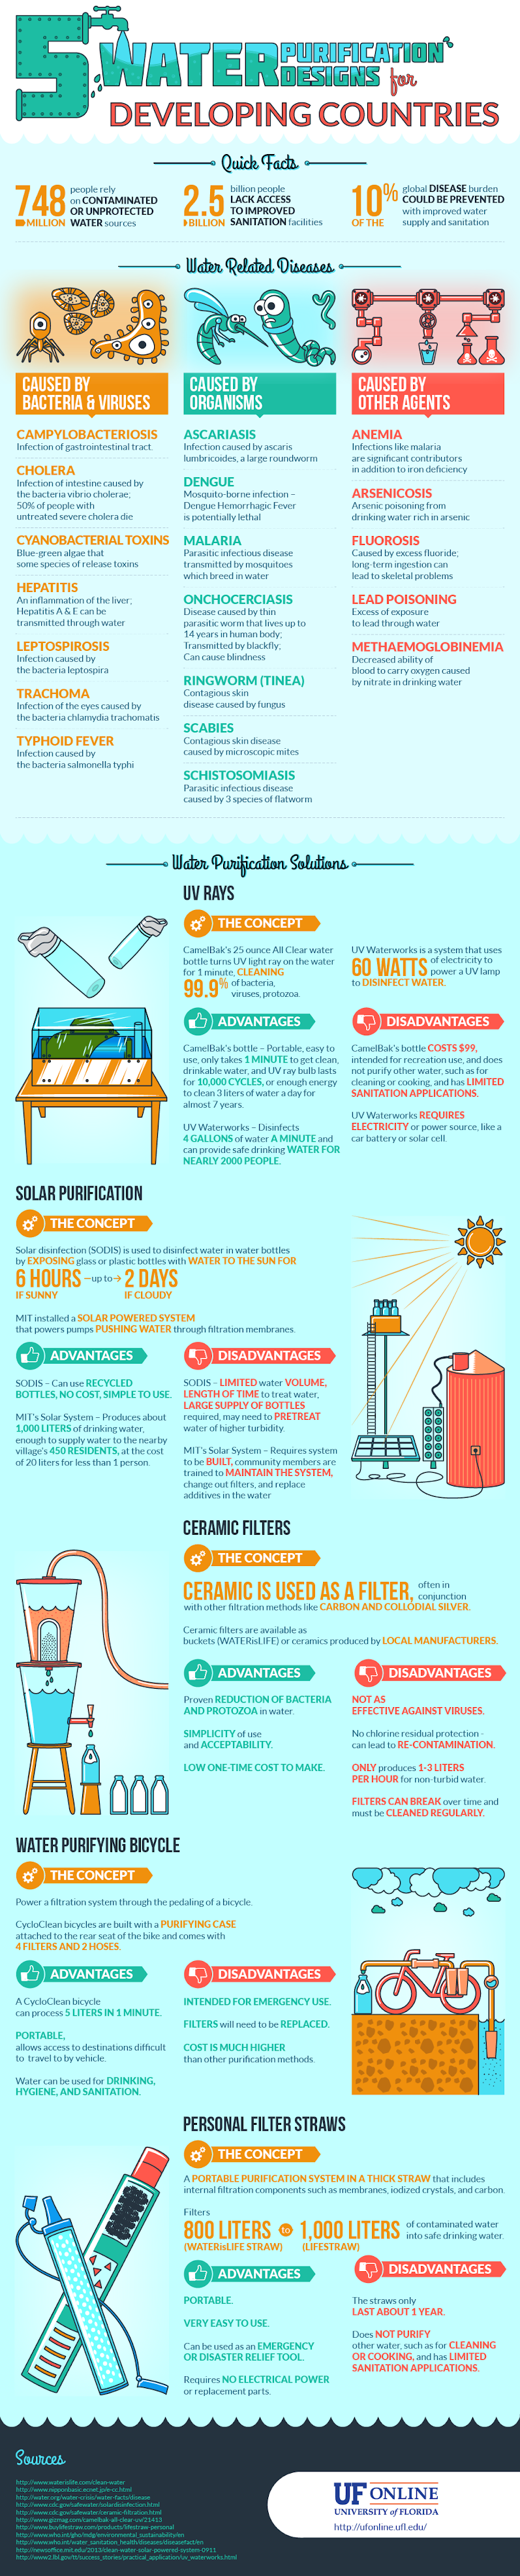 Five Water Purification Designs #infographic #Health #Water #Water Purification